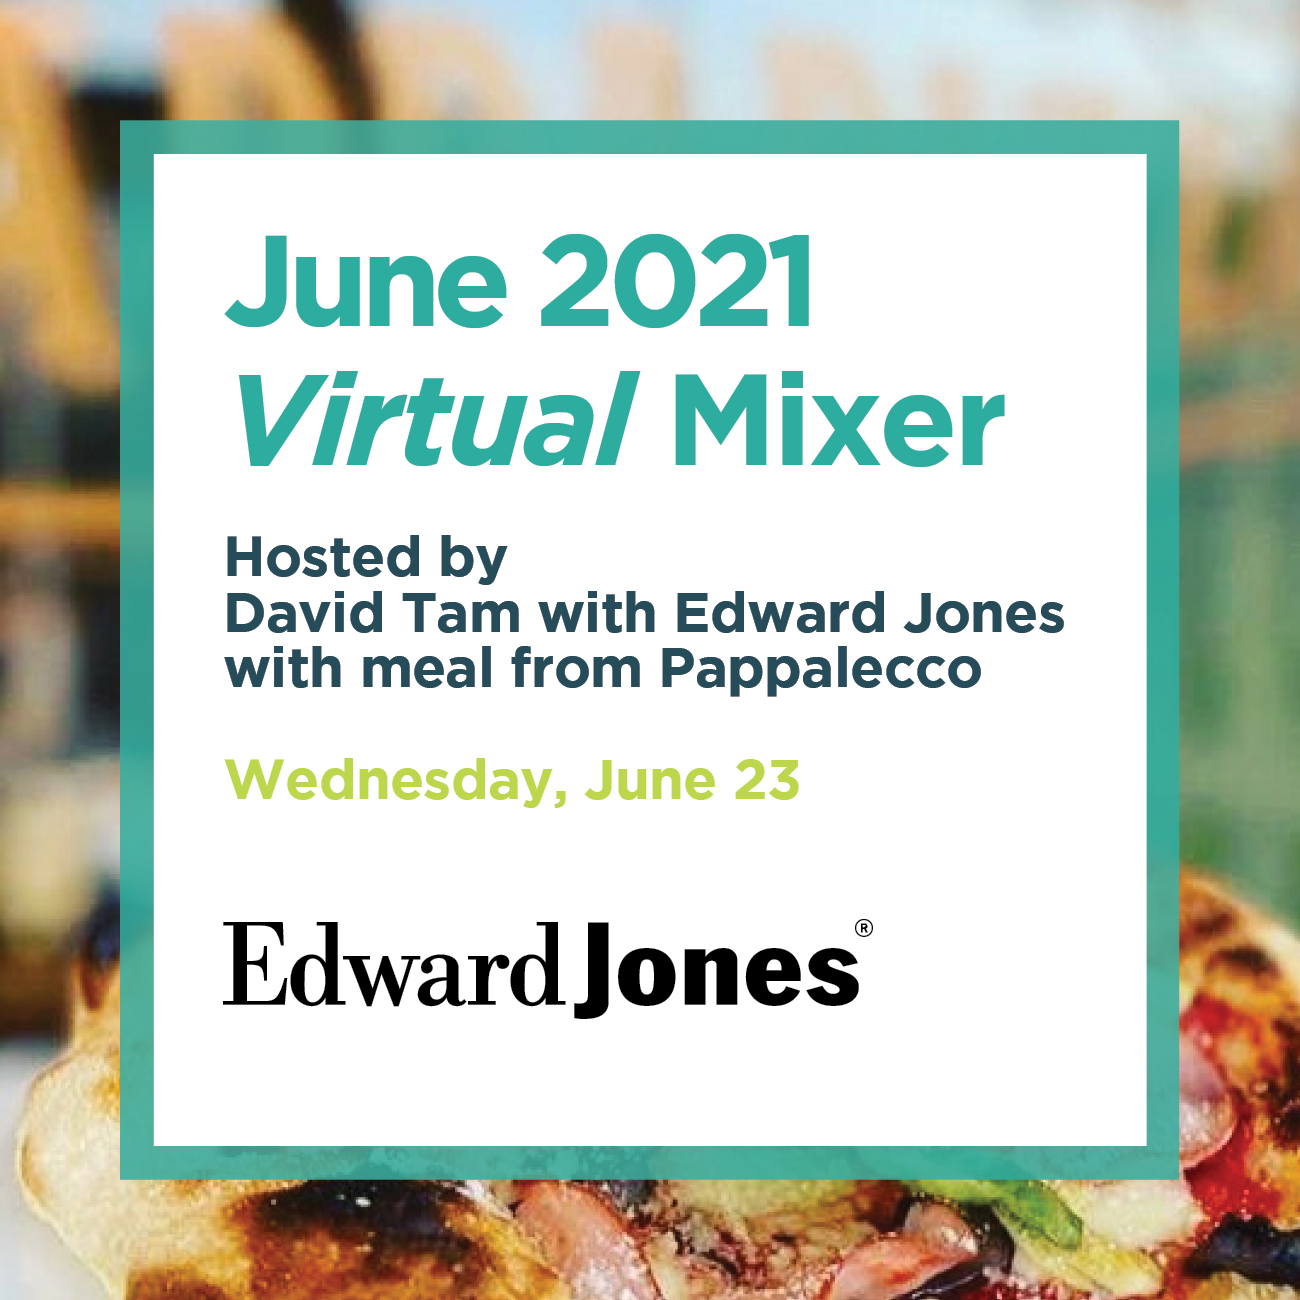 June 2021 Virtual Mixer Hosted by David Tam with Edward Jones with meal from Pappalecco